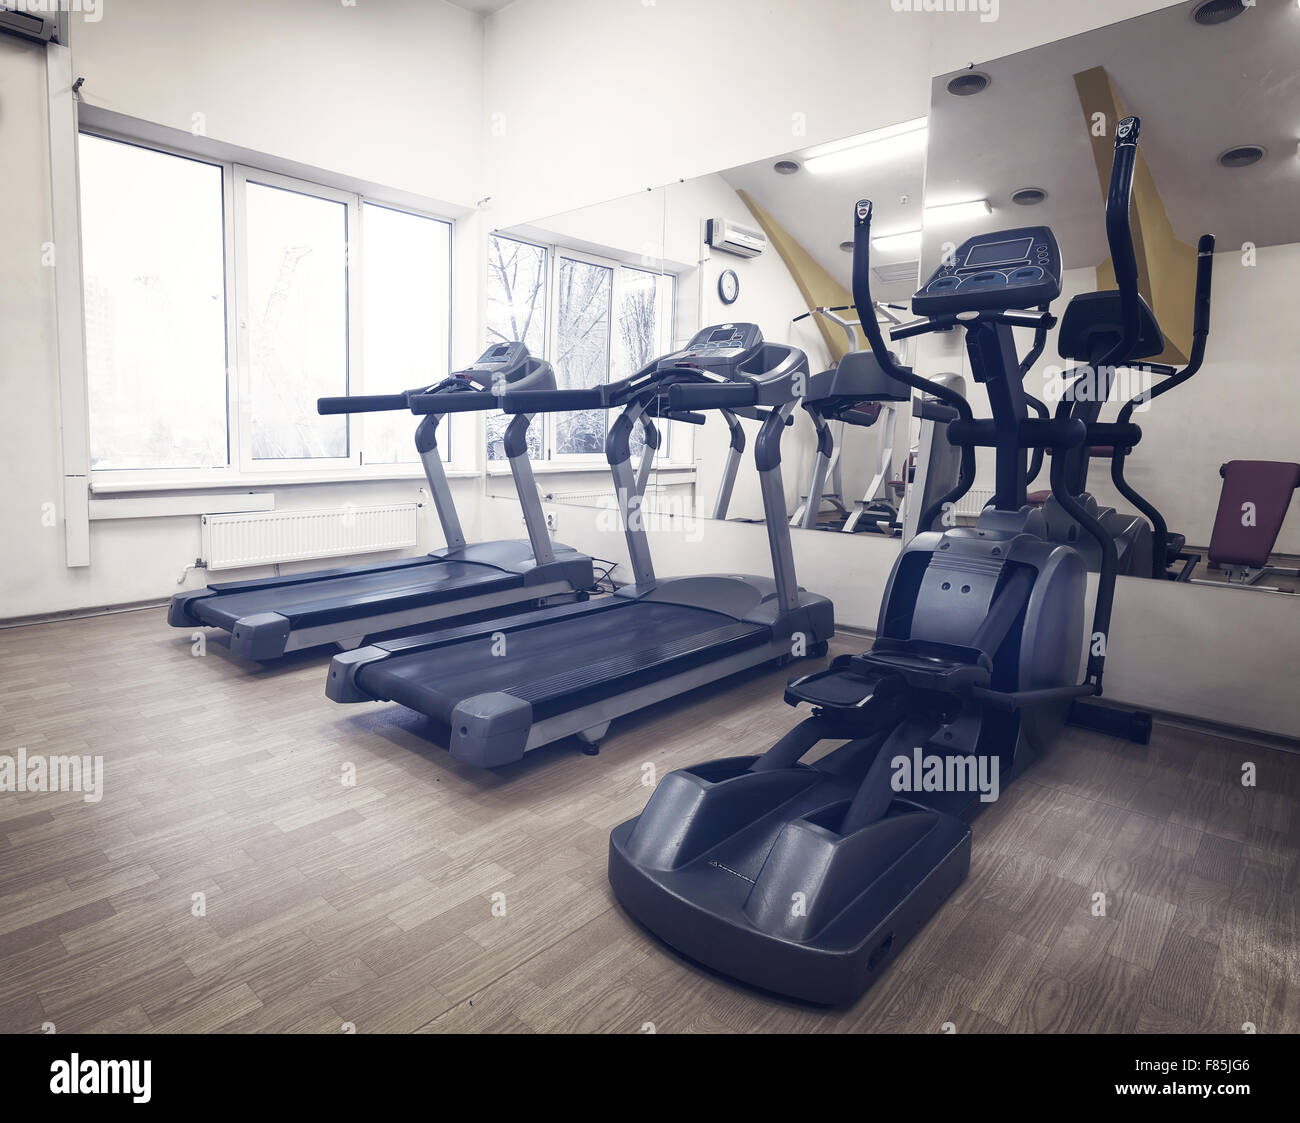 Cardio in the gym against the window - Stock Image